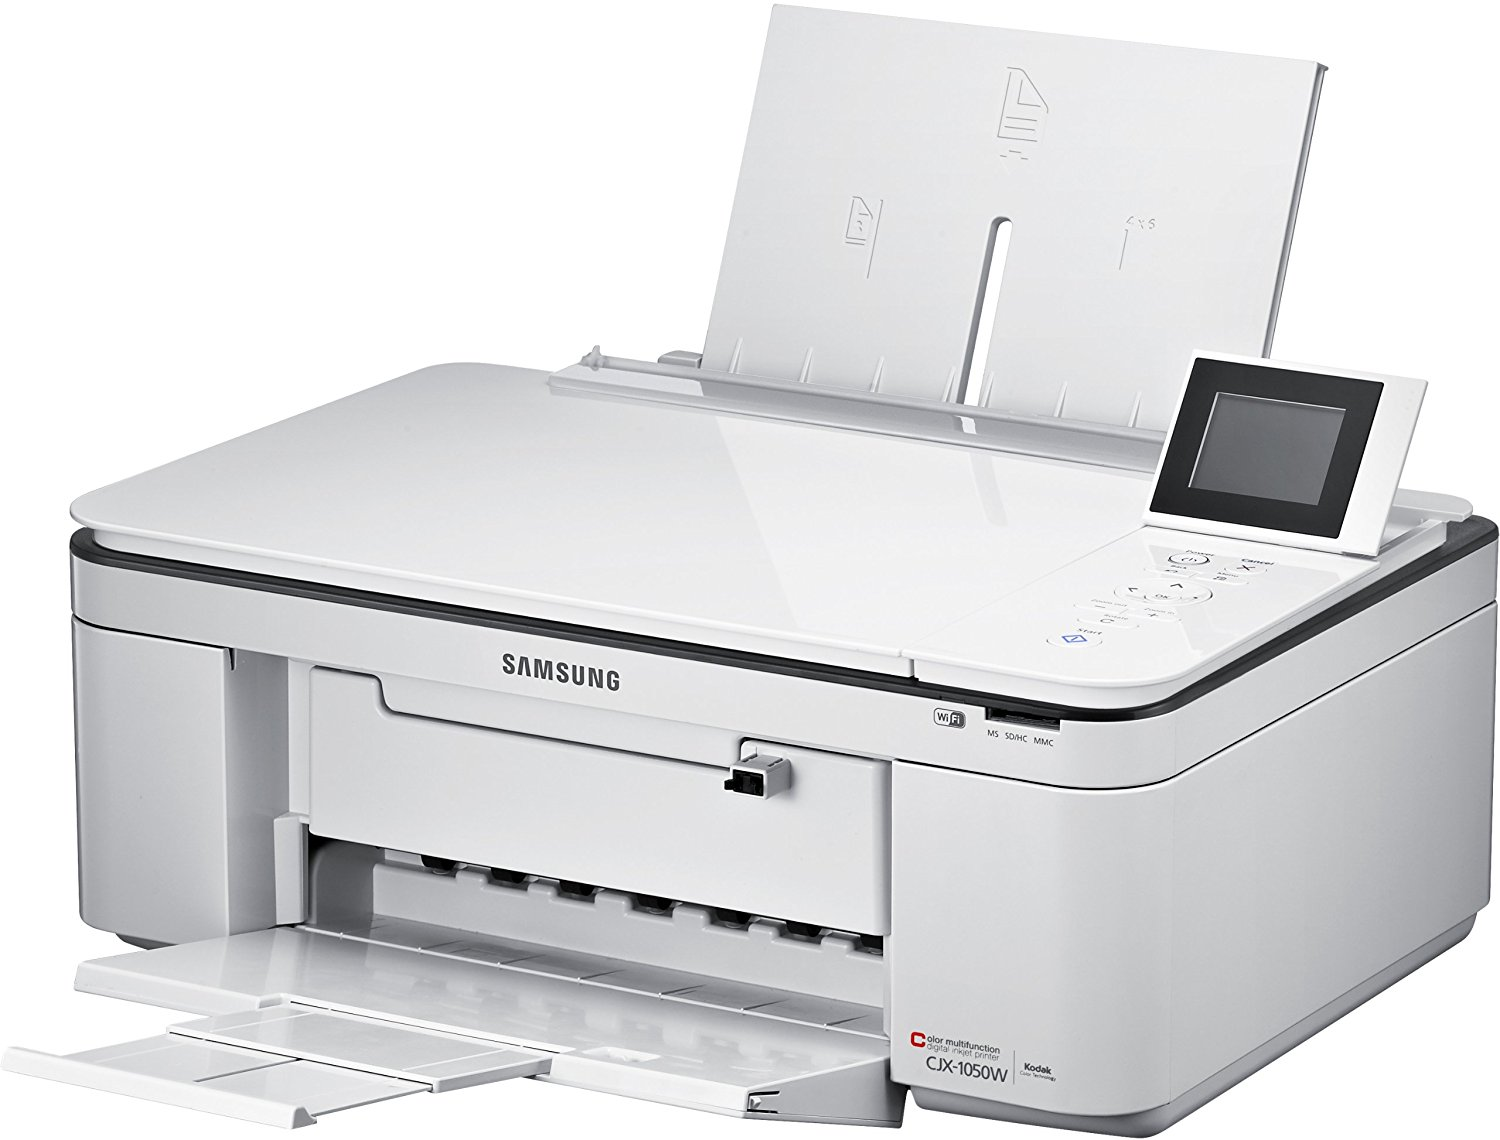 M262x 282x Series Samsung M262x Treiber Samsung M262x 282x Series Driver This Chapter Describes The Main Functions For Service Such As The Product Maintenance Method Camellia Sarvis